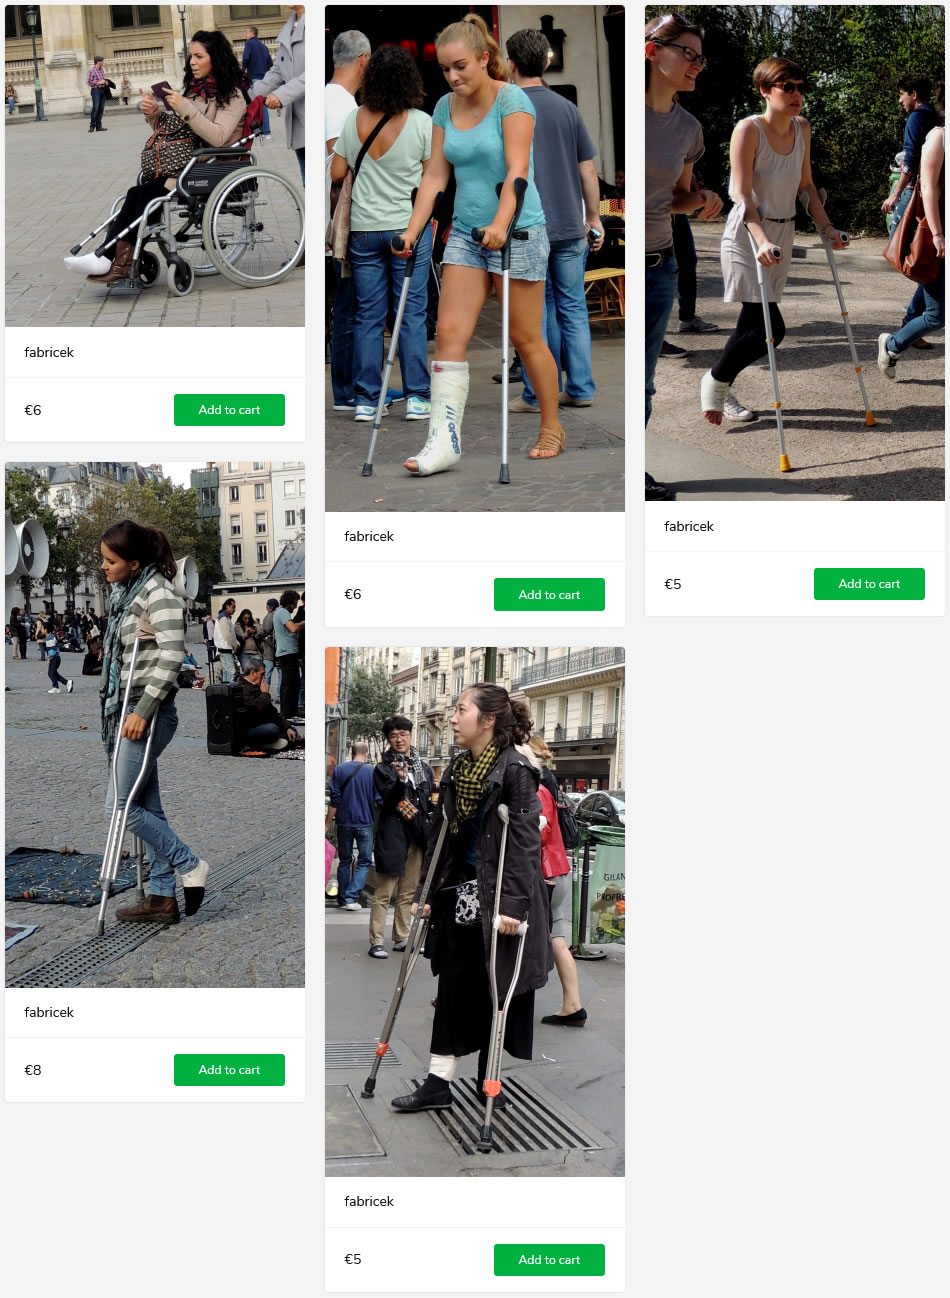 5 new sets showing girls and women crutching and in wheelchairs during orthopedic treatment in casts, braces and splints